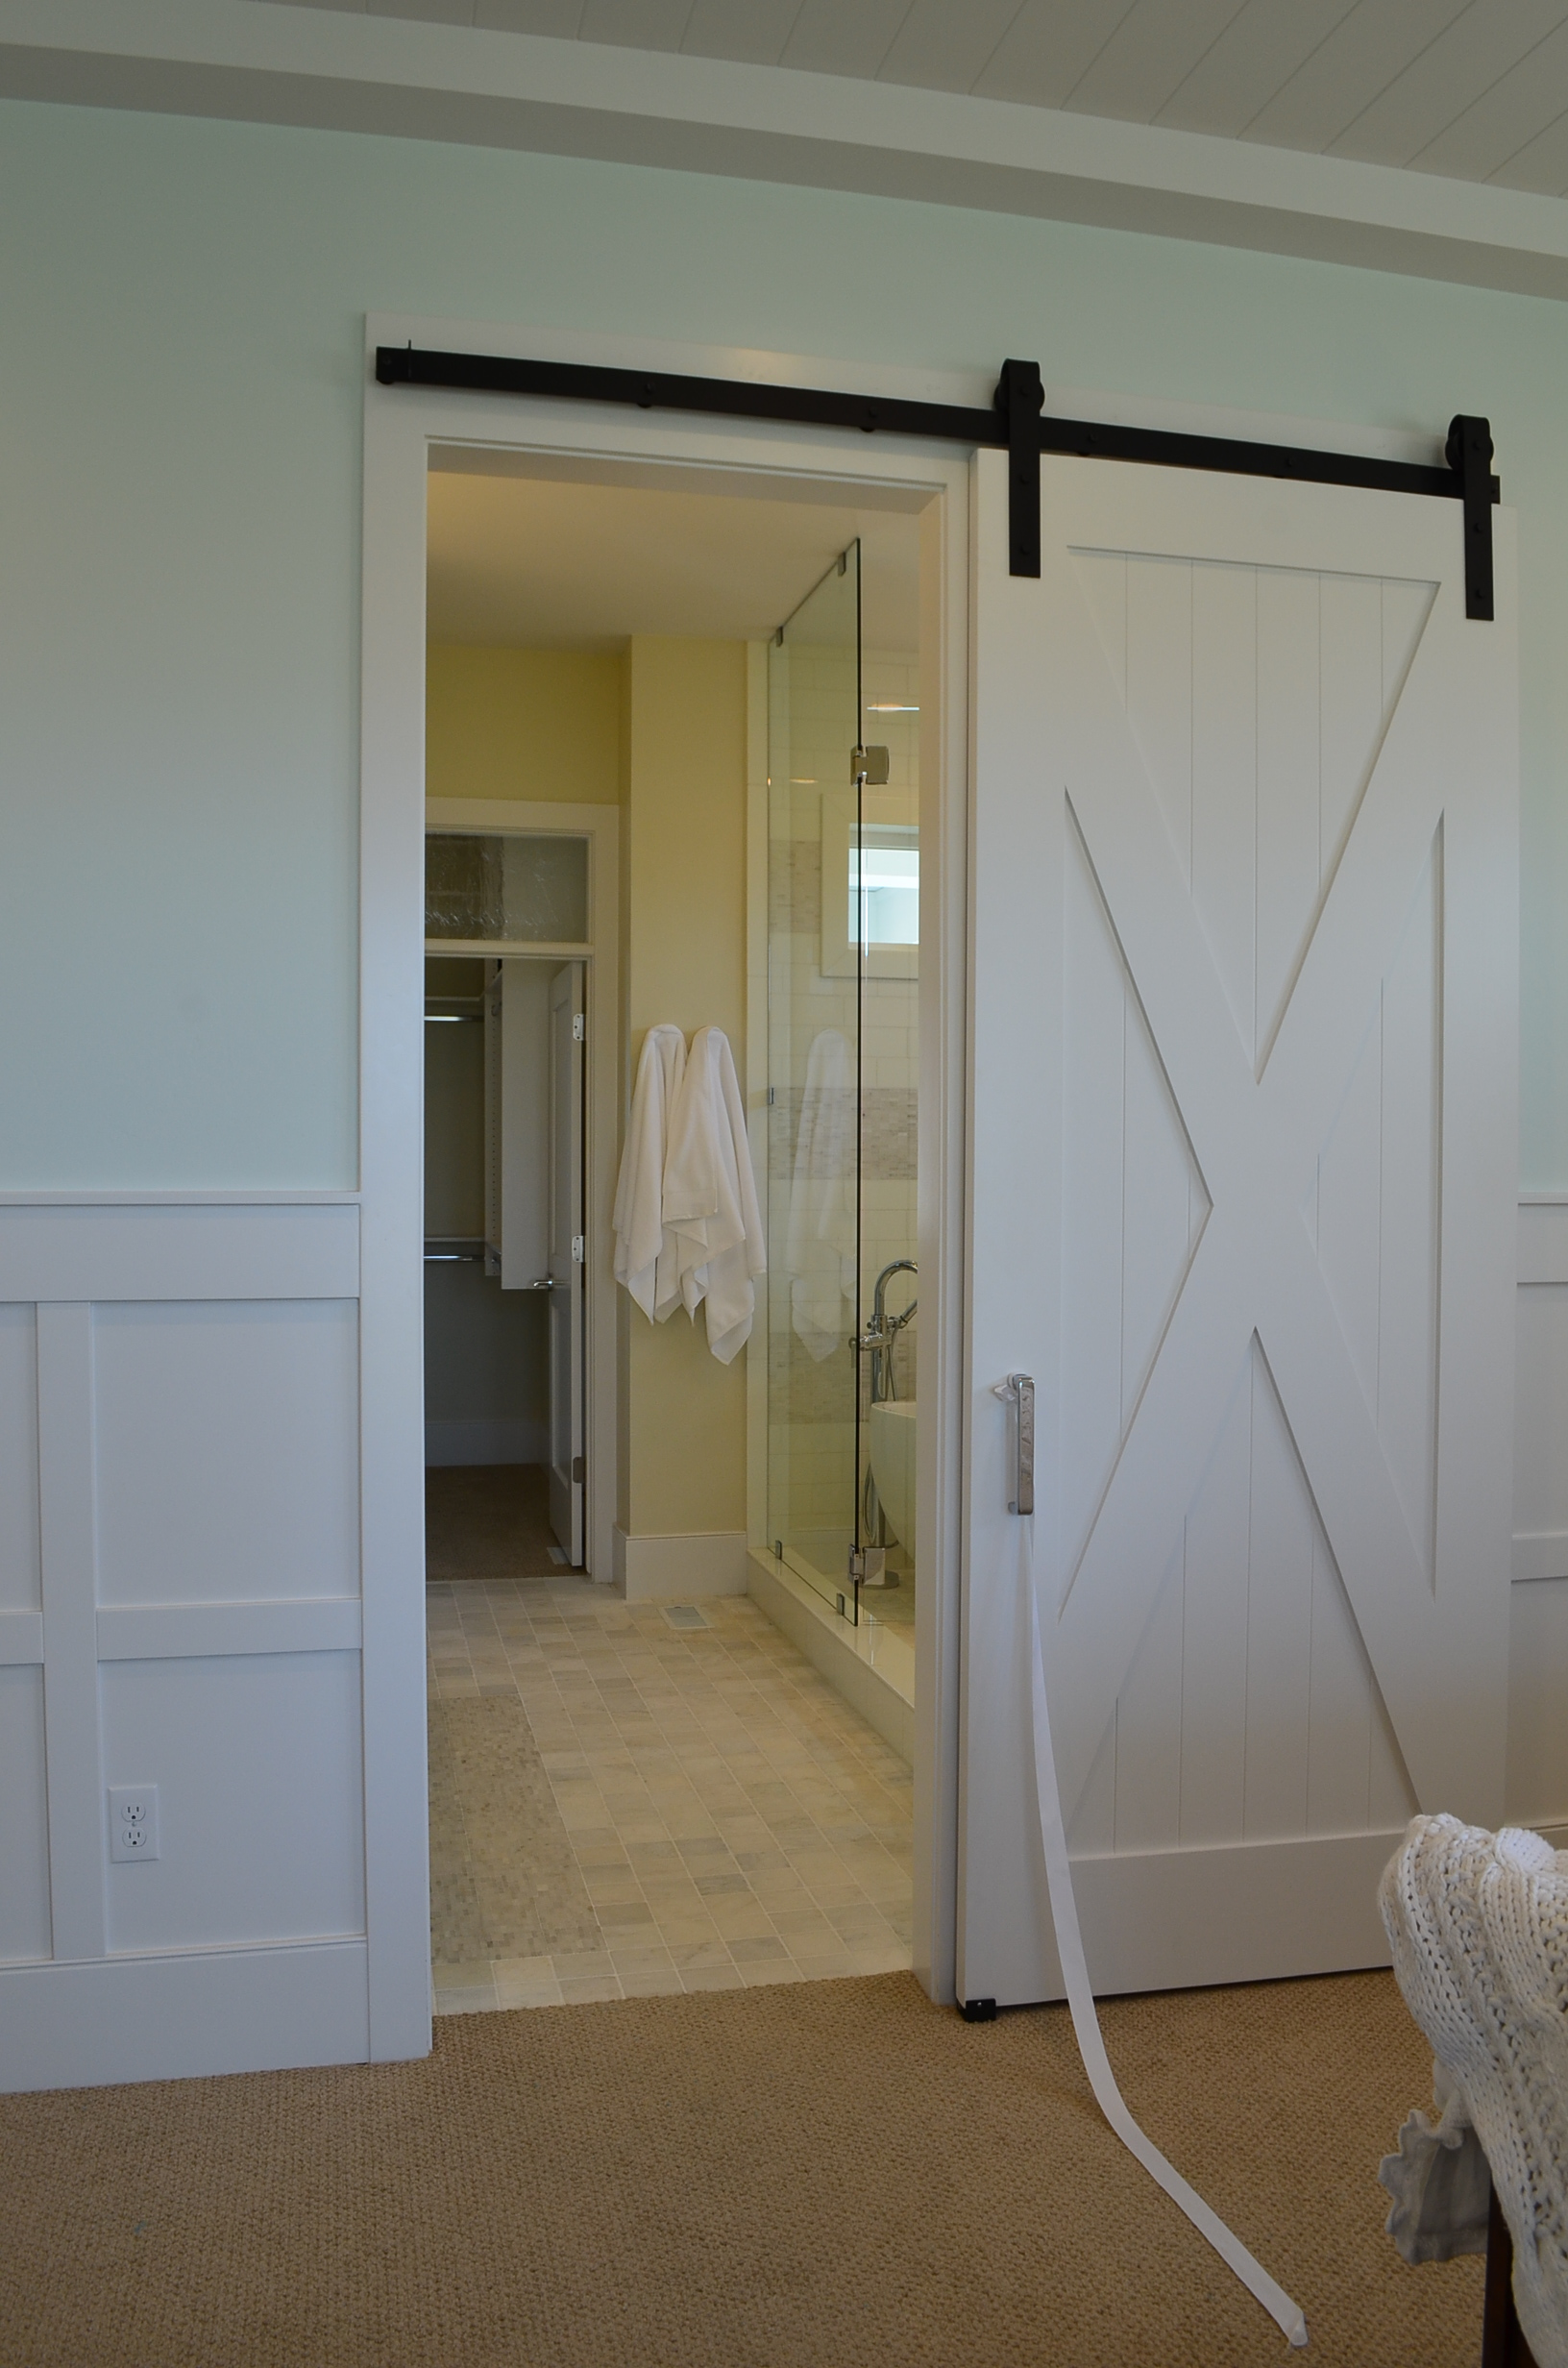 Sliding Barn Door Designs: Barn Doors, Barns And Doors On Pinterest